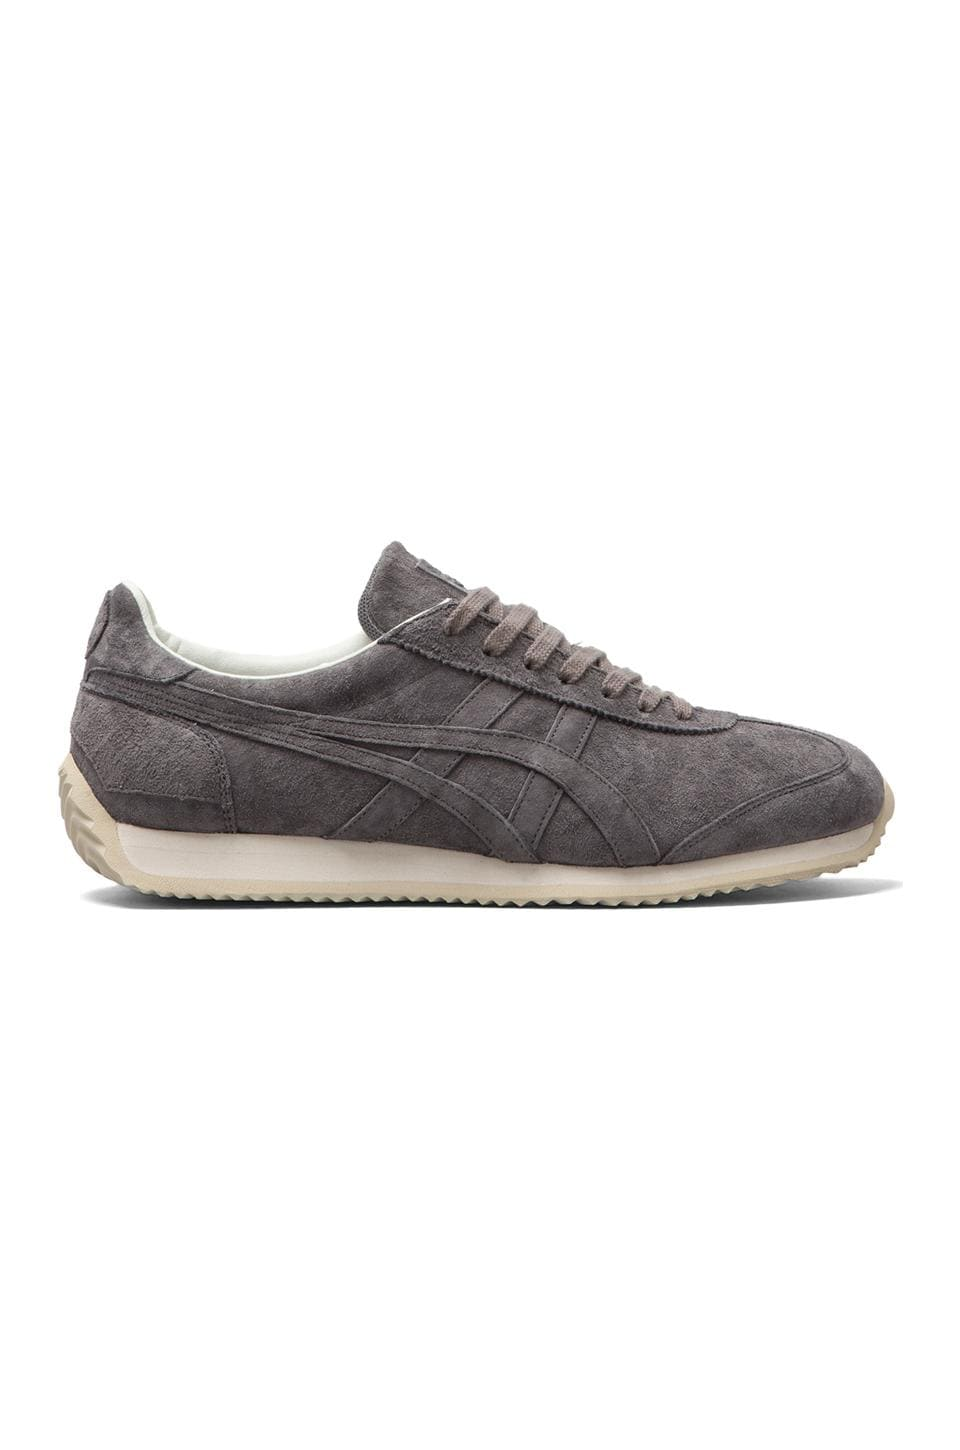 Onitsuka Tiger California 78 Anniversary in Charcoal/Charcoal